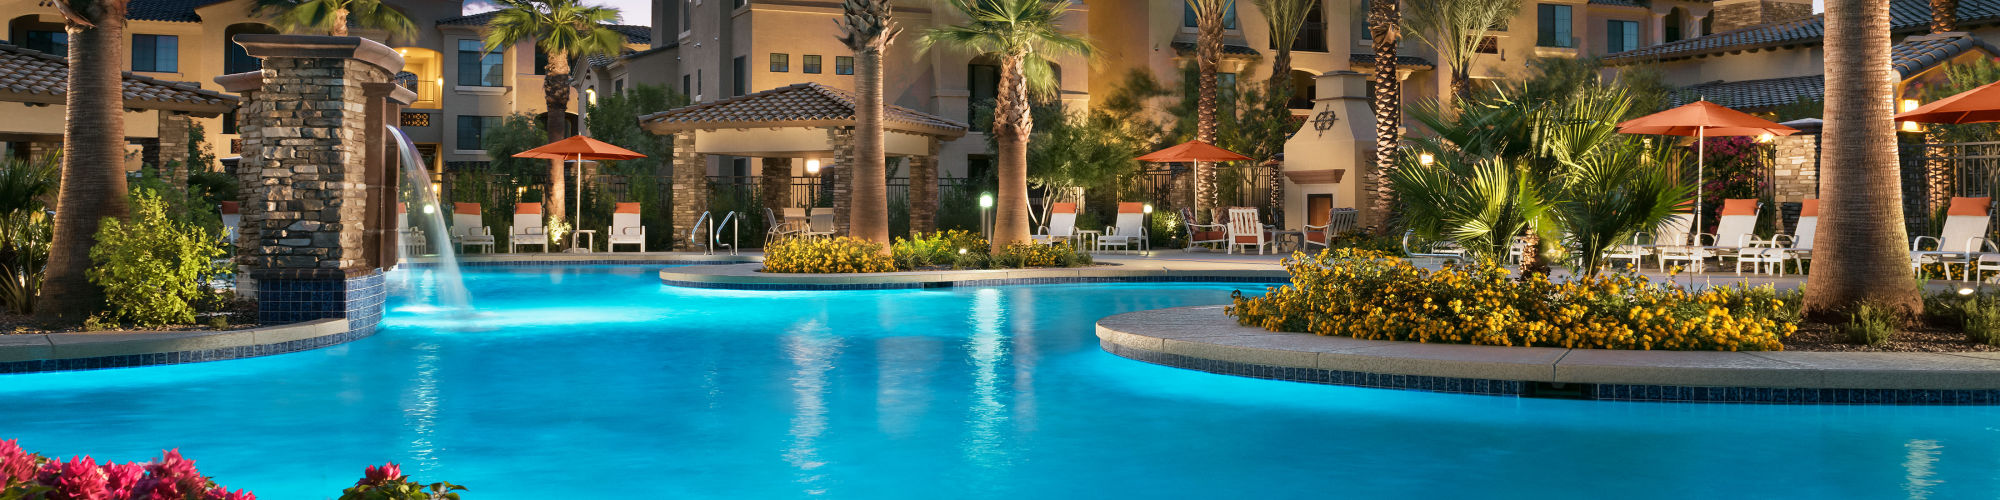 Apply to live at San Milan in Phoenix, Arizona